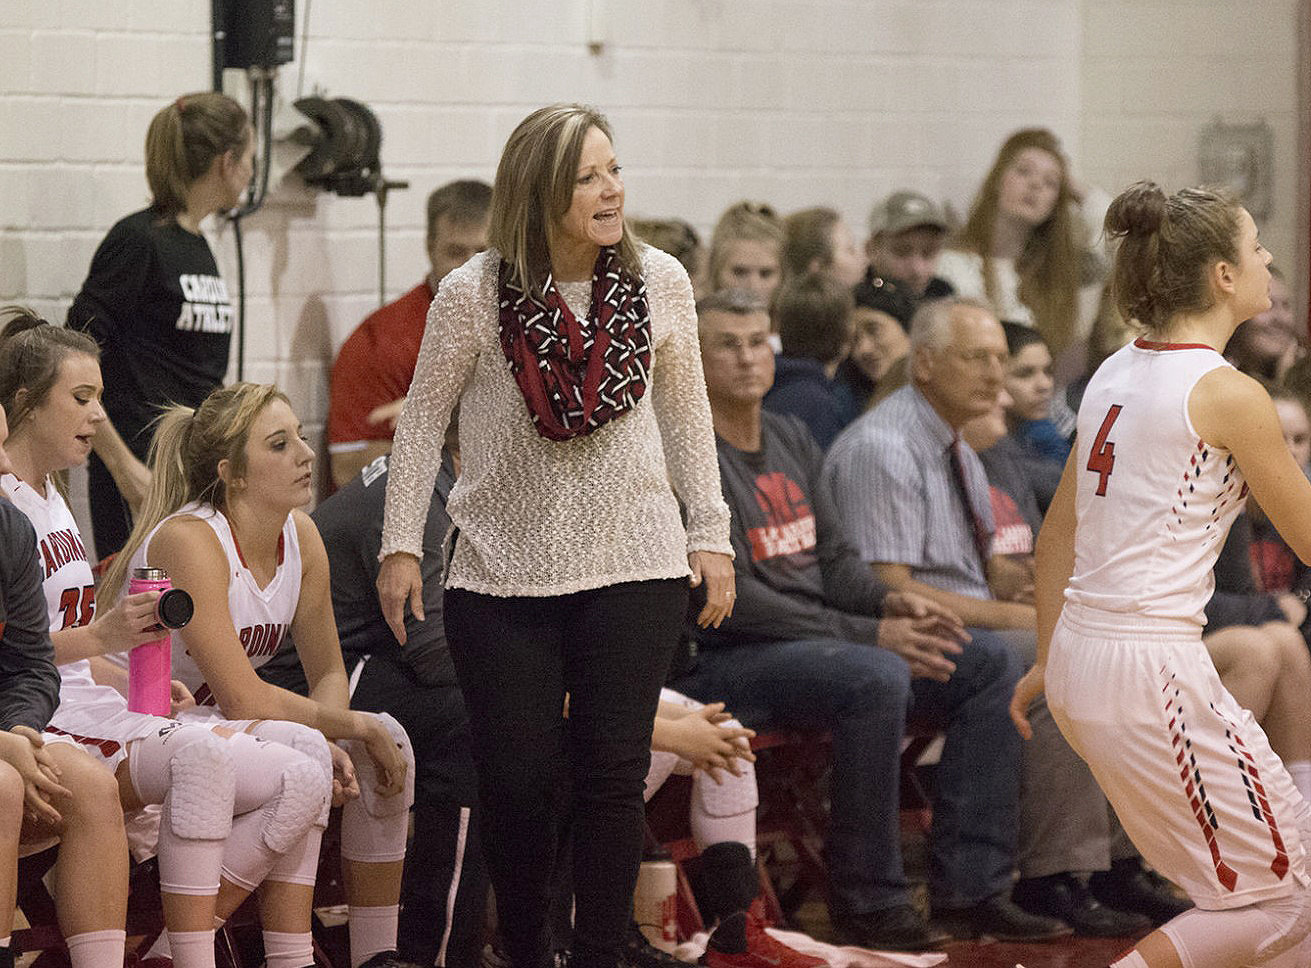 Dana Beal-Sestak: Multiple-time state champion coach Dana Beal-Sestak joins the Gonzales Apaches coaching staff after years of success at Shiner St. Paul.